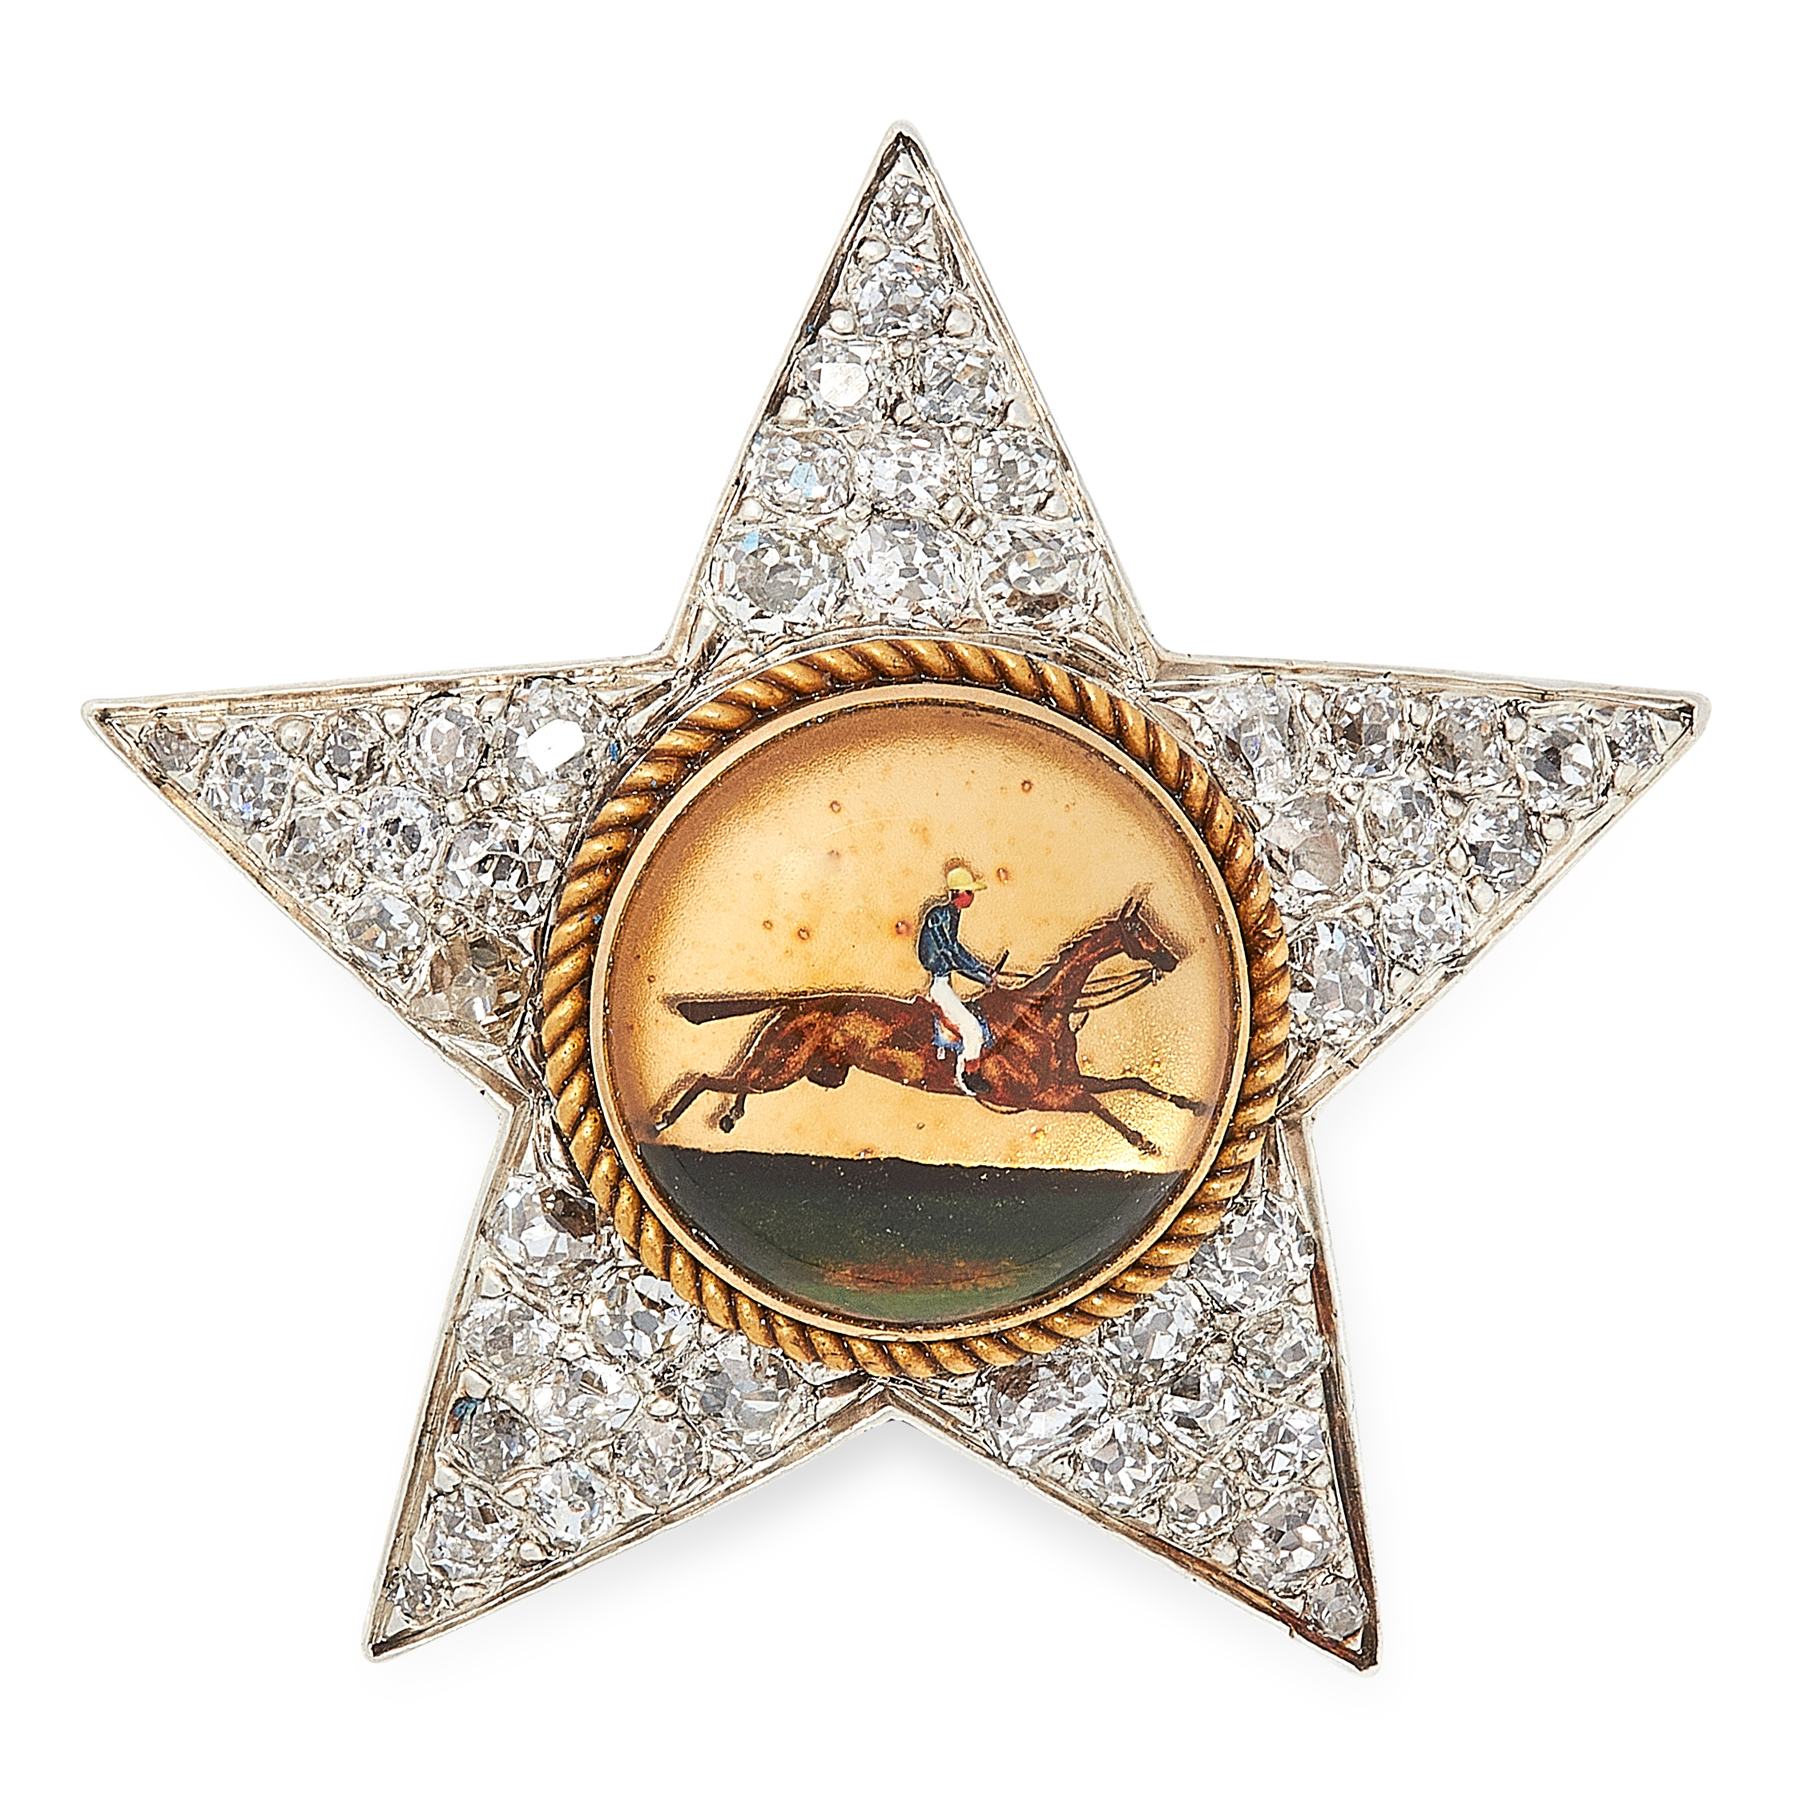 AN ANTIQUE REVERSE CARVED INTAGLIO AND DIAMOND BROOCH in yellow gold and silver, designed as a star,